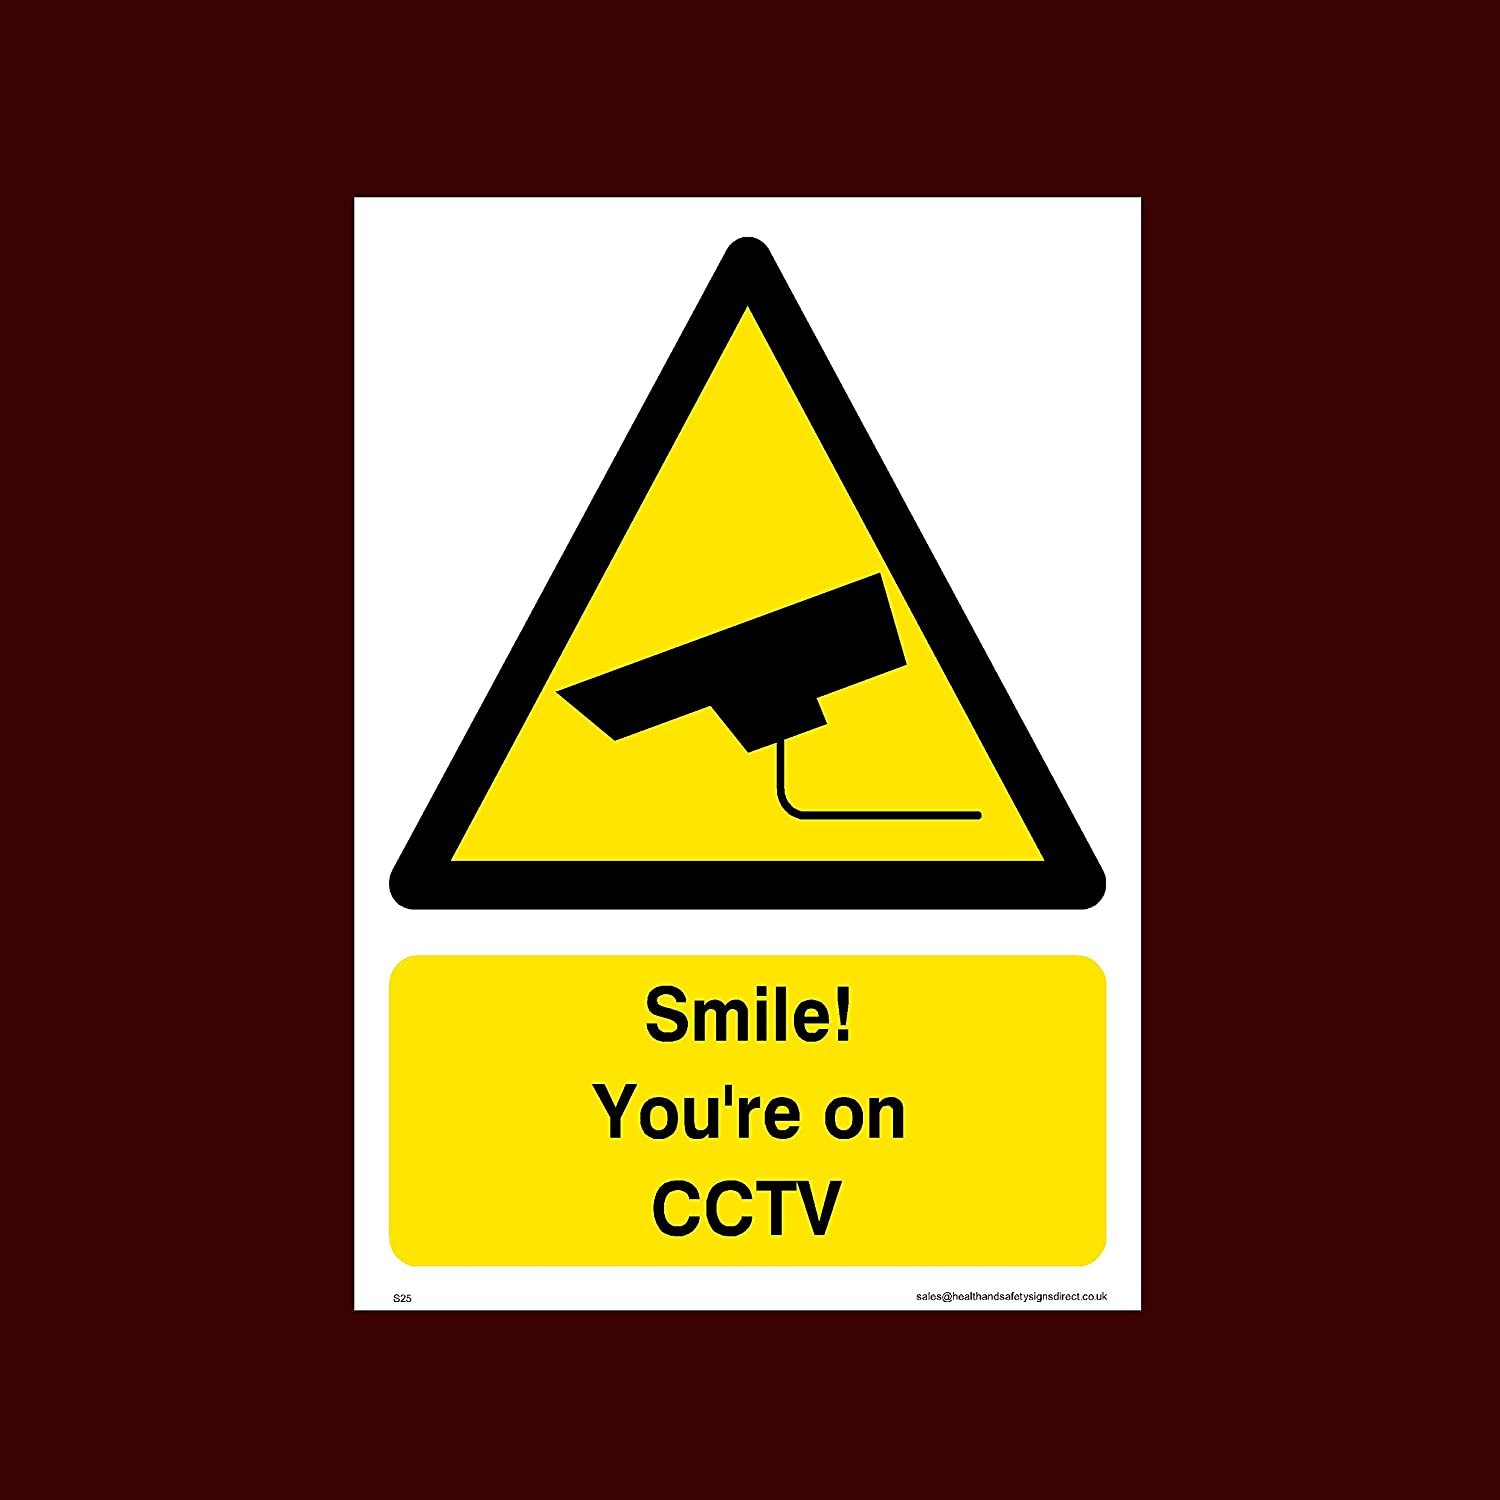 S25 Smile Security - CCTV Alarmed Camera Dogs Surveillance Warning Youre on CCTV Plastic Sign Premises